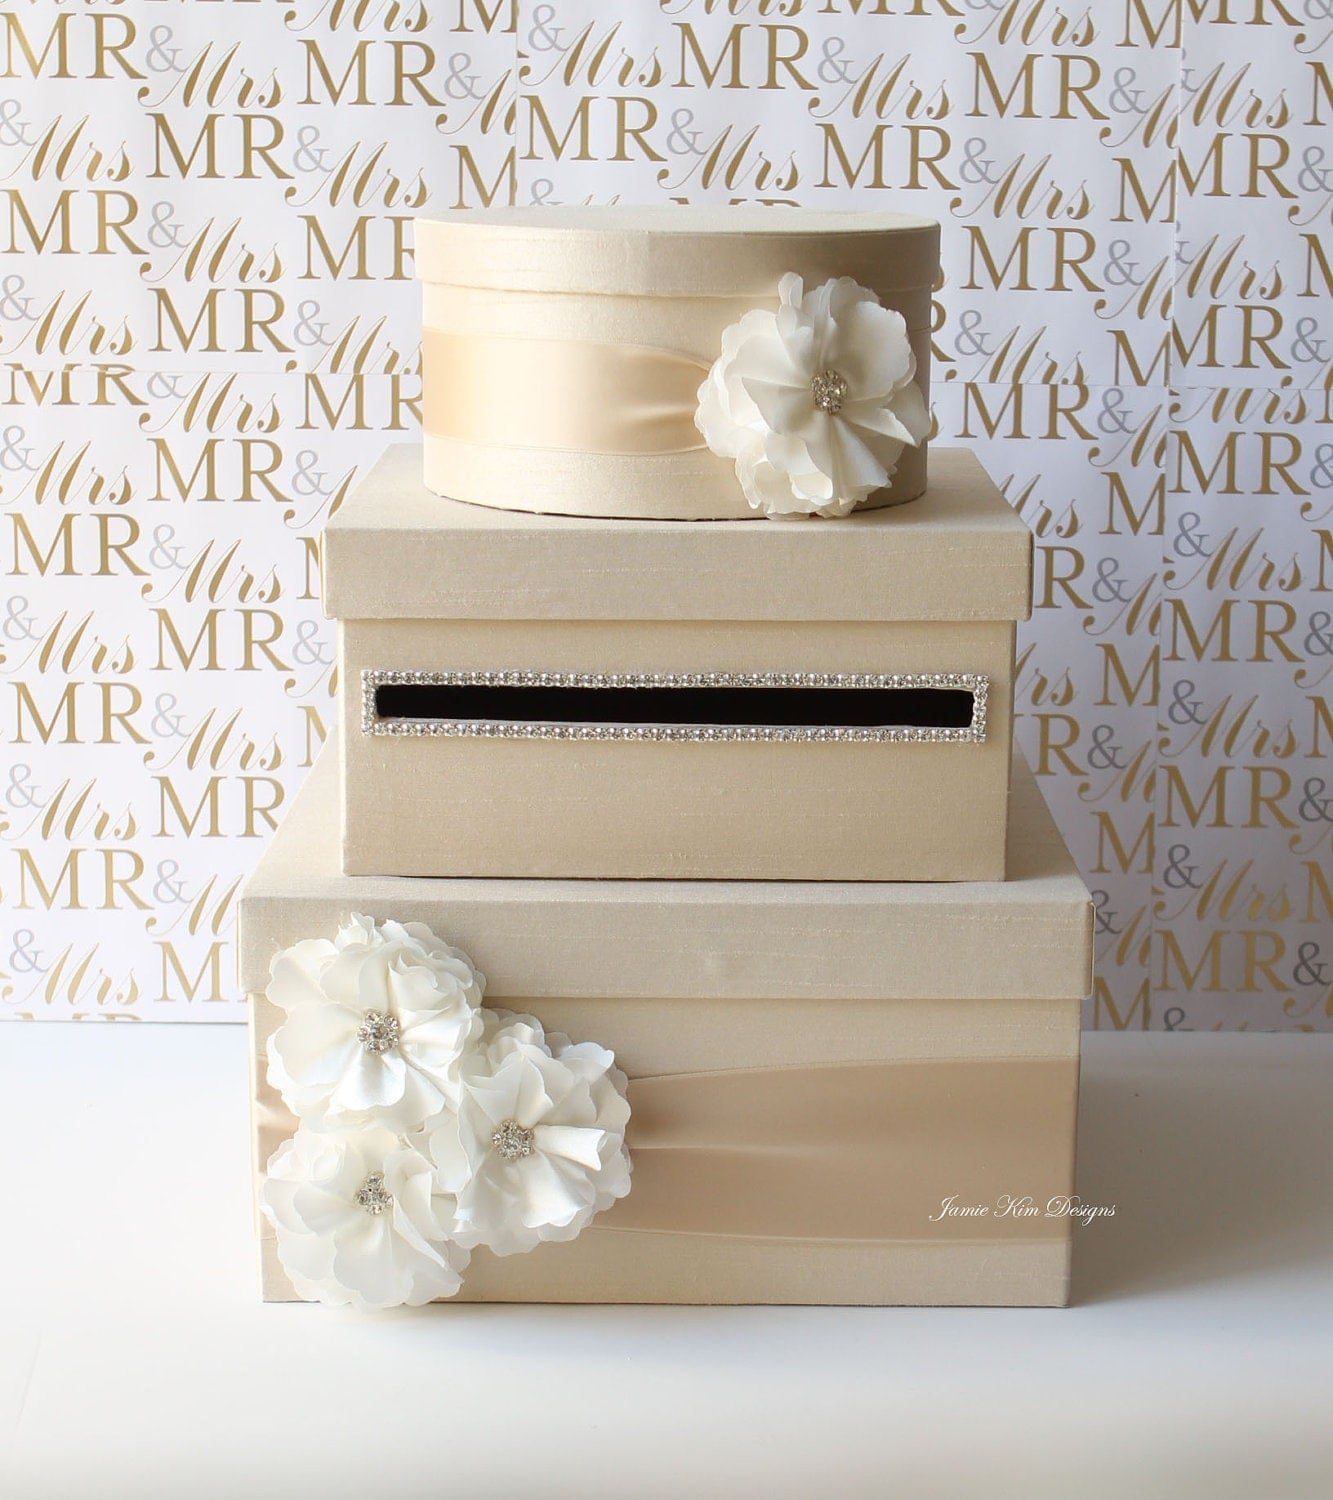 Wedding Gift Card Containers : Wedding Card Box Money Box Gift Card Holder Custom Made to